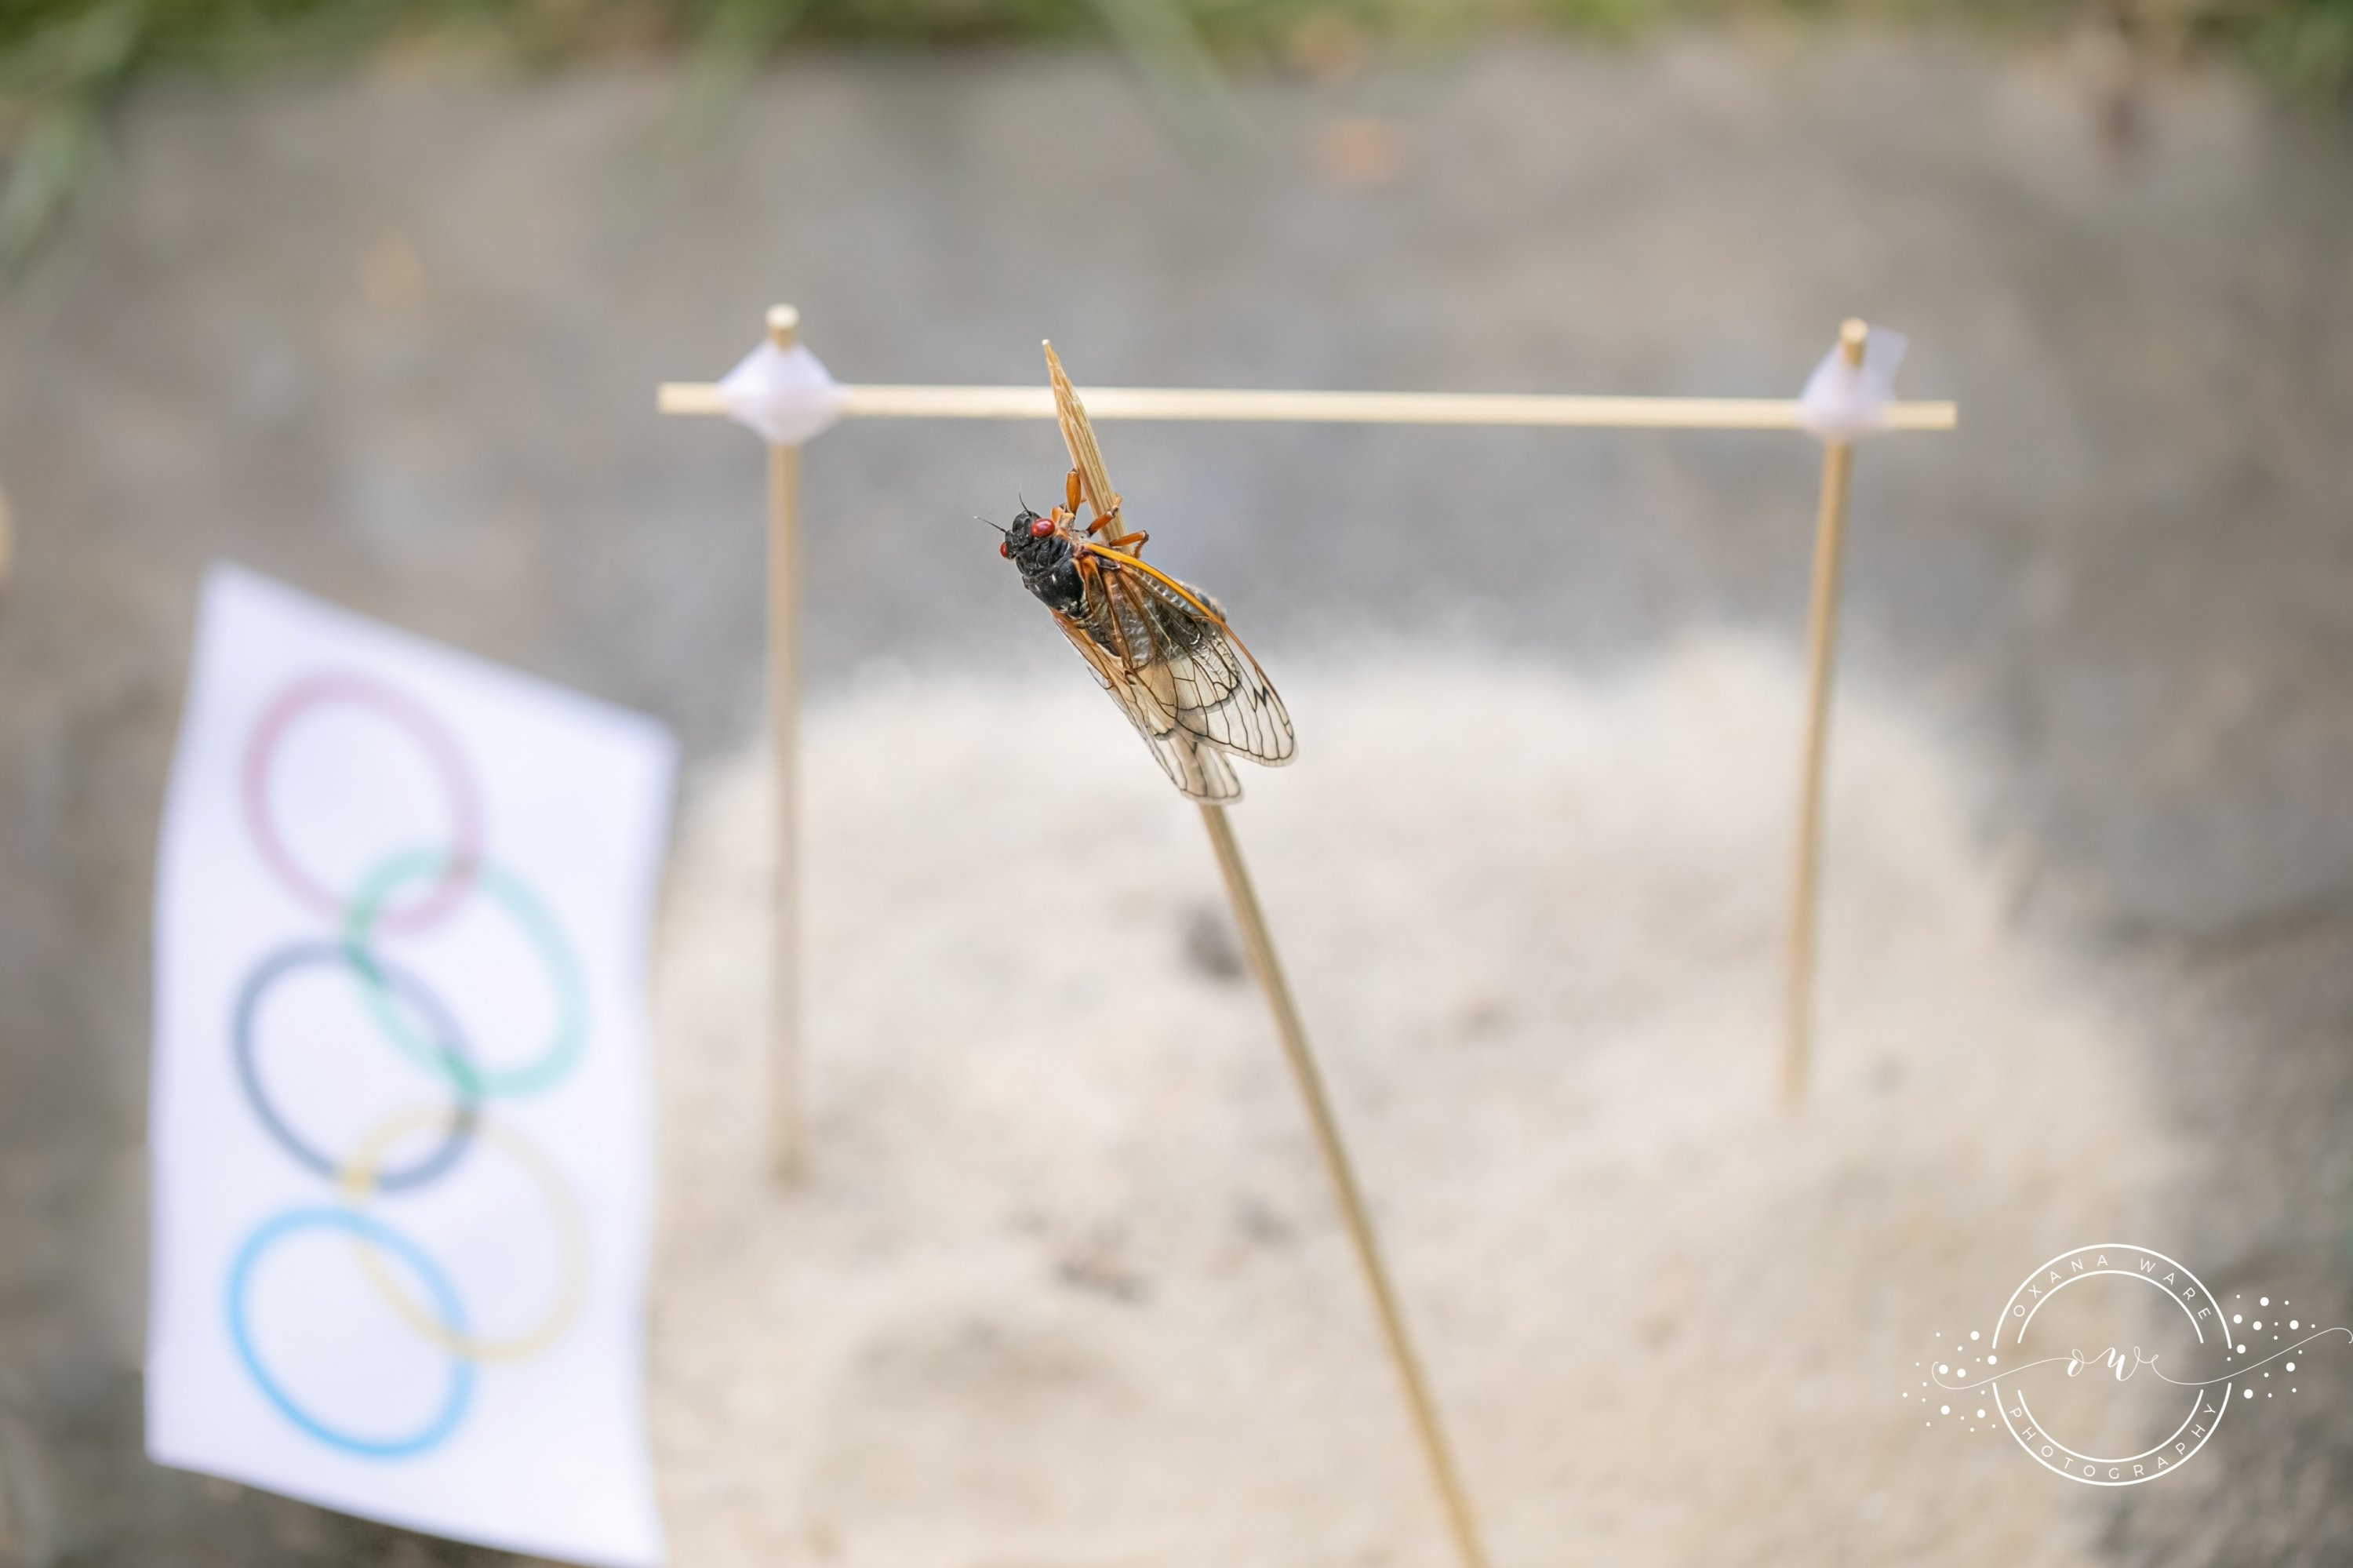 Cicadas are posed in an Olympic pole vaulting scene by Virginia photographer and cicada enthusiast Oxana Ware in Arlington, Virginia, U.S., in this May, 2021 handout photo. (REUTERS Photo)